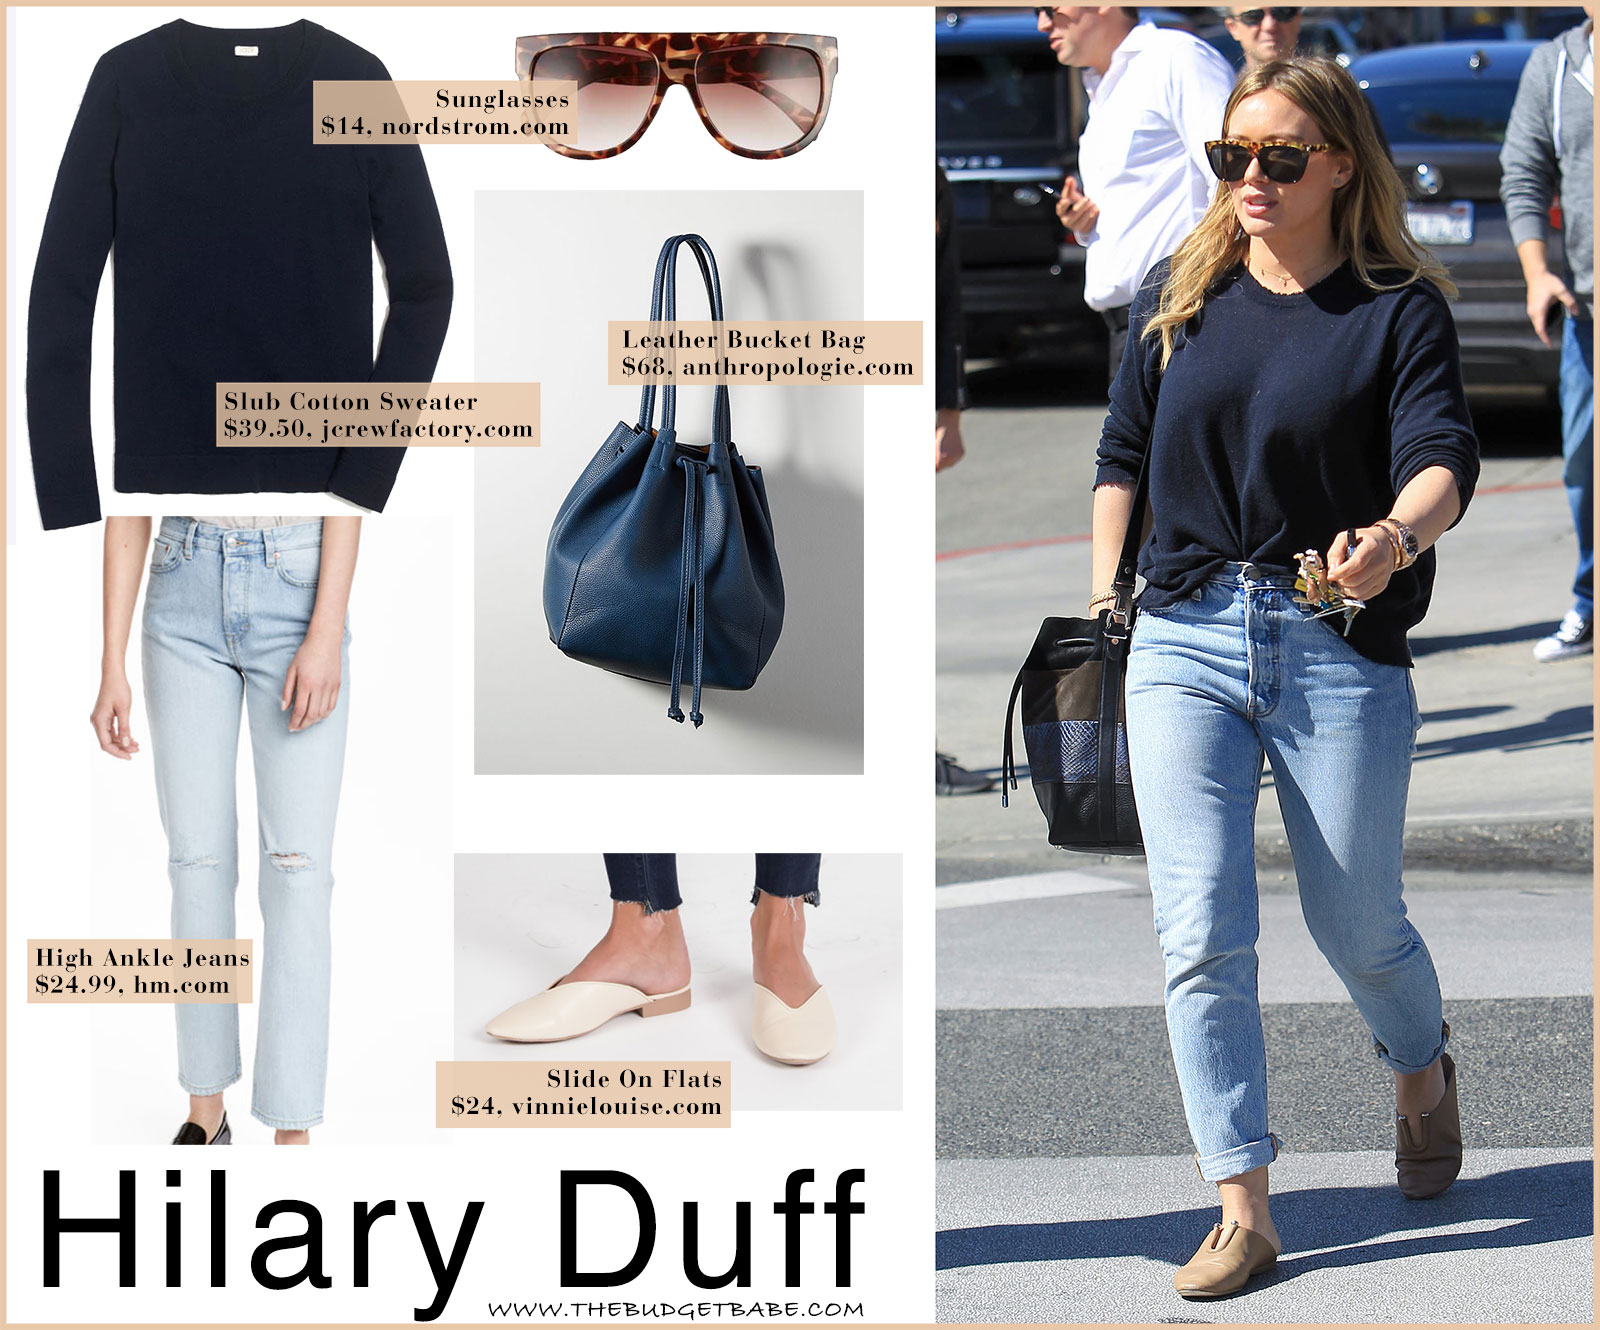 Hilary Duff wears tan mules with high waist jeans and a navy sweater.